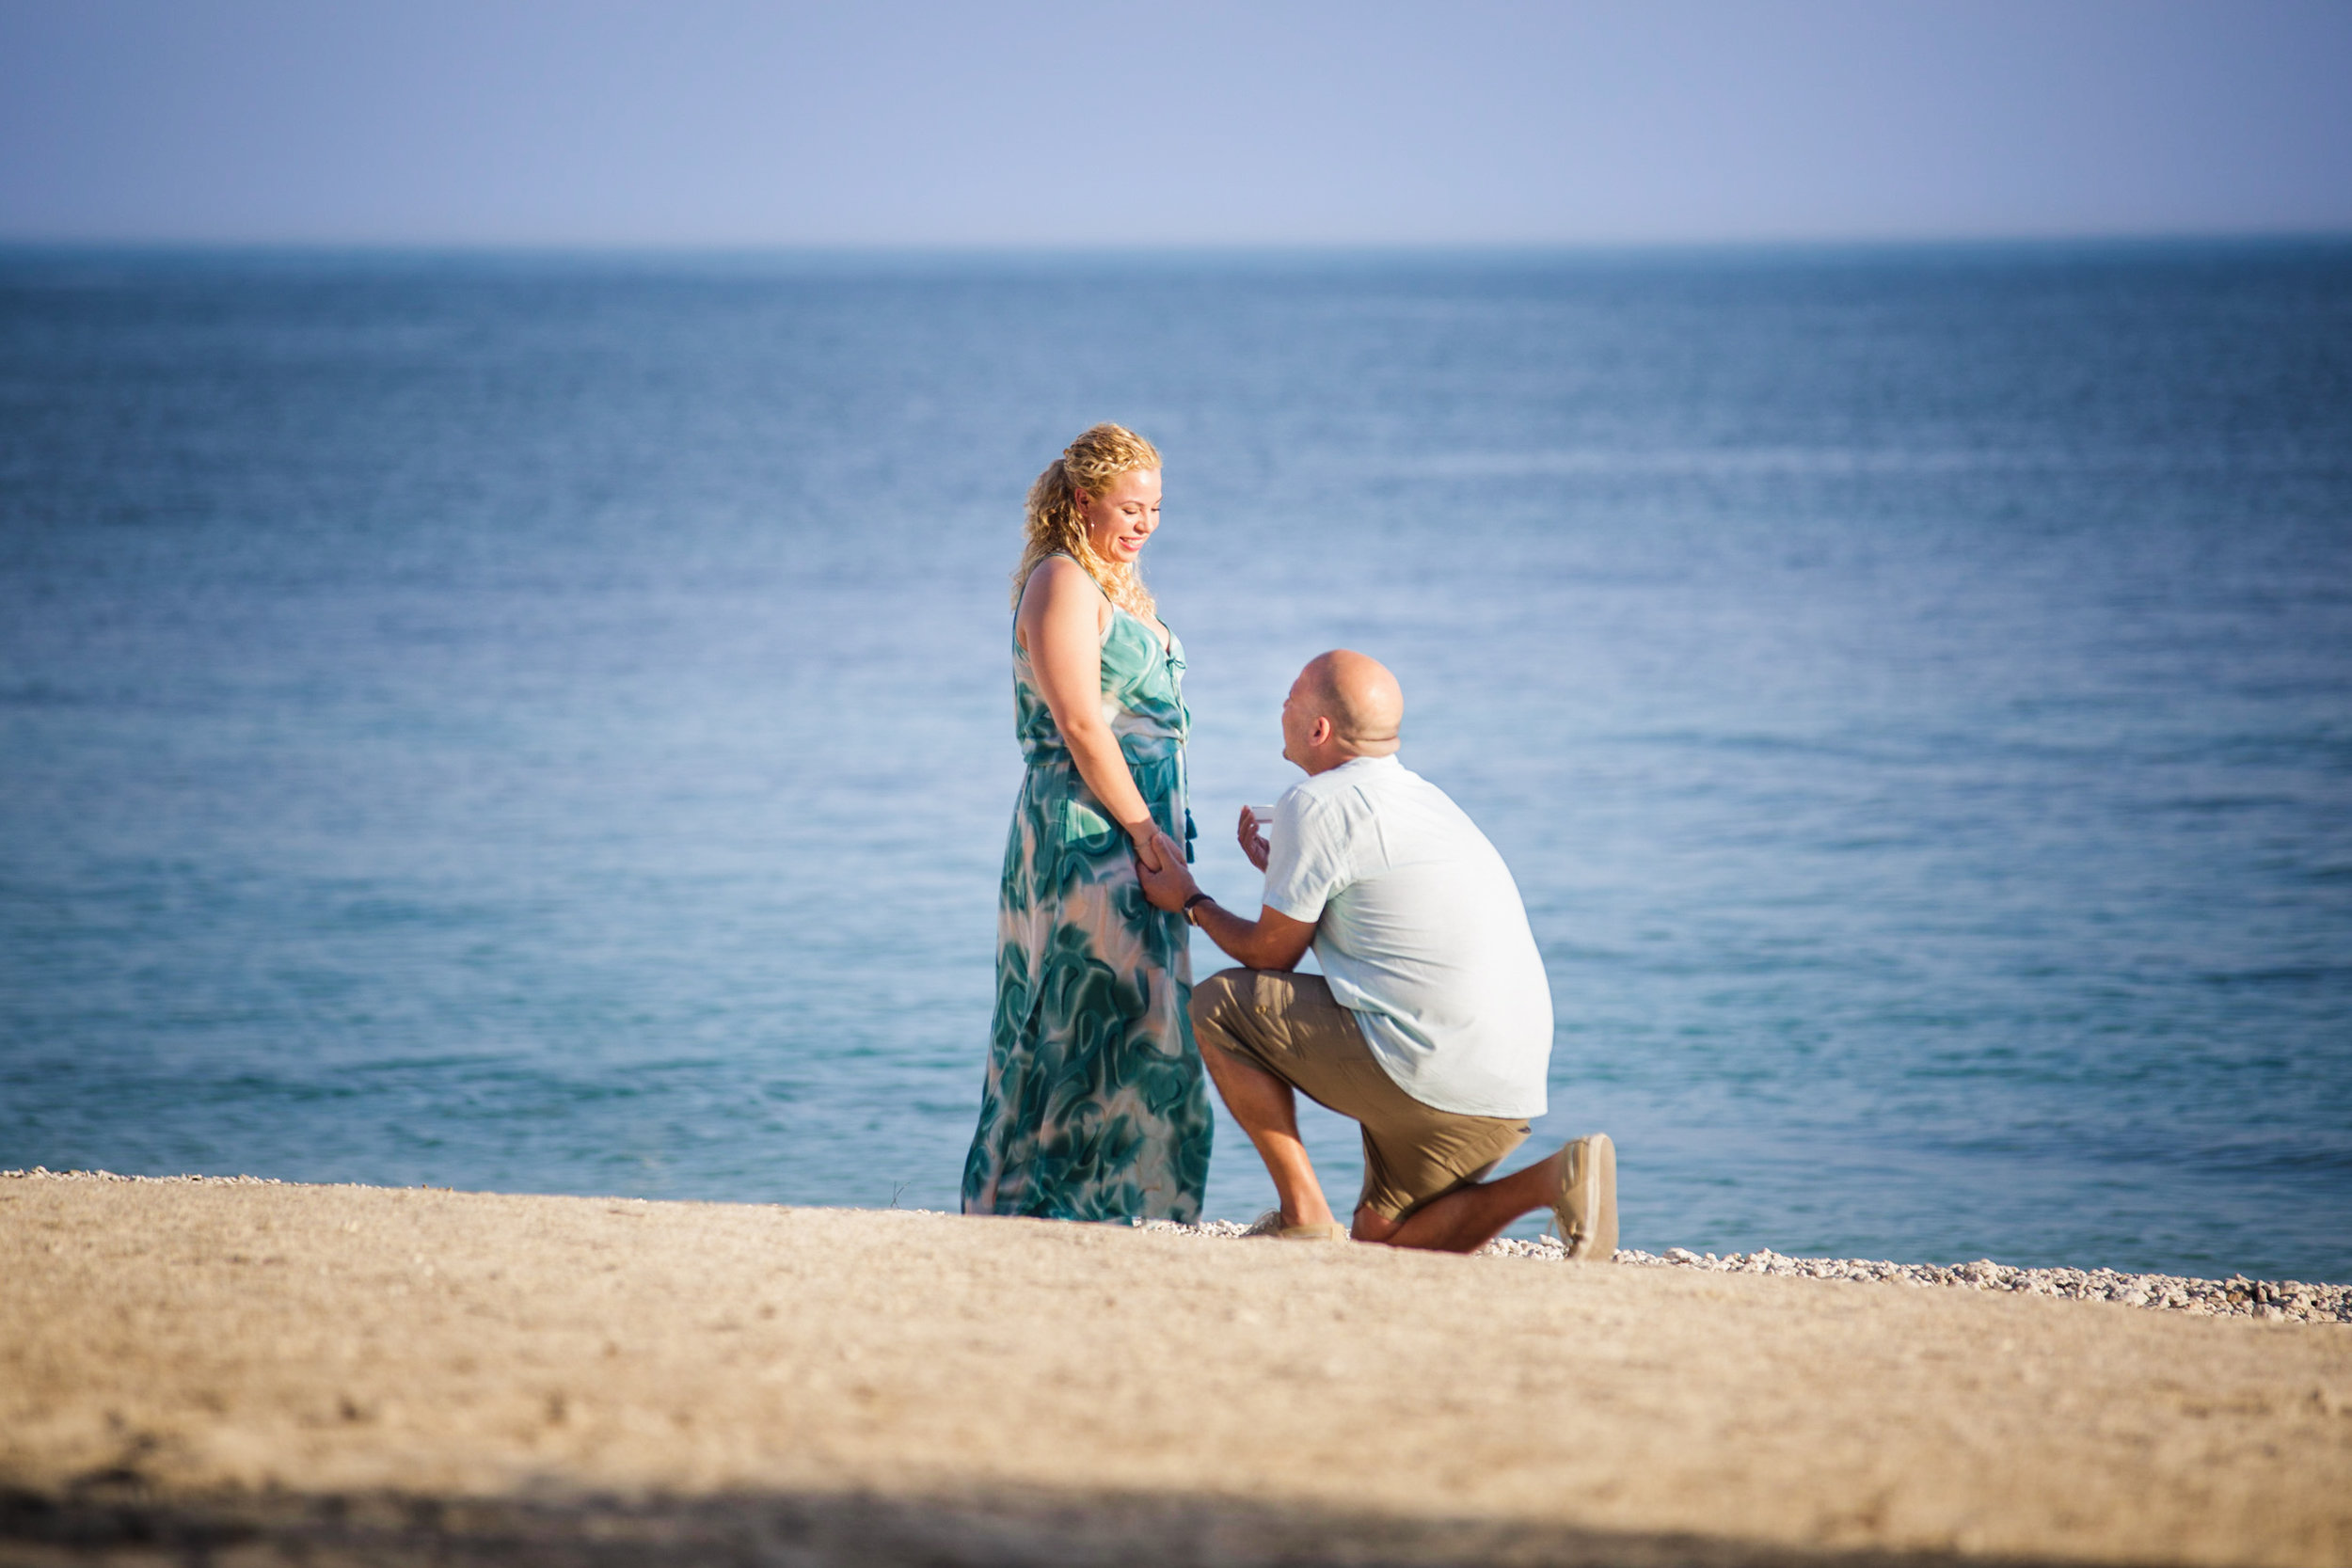 Asking someone to marry you in Key West?